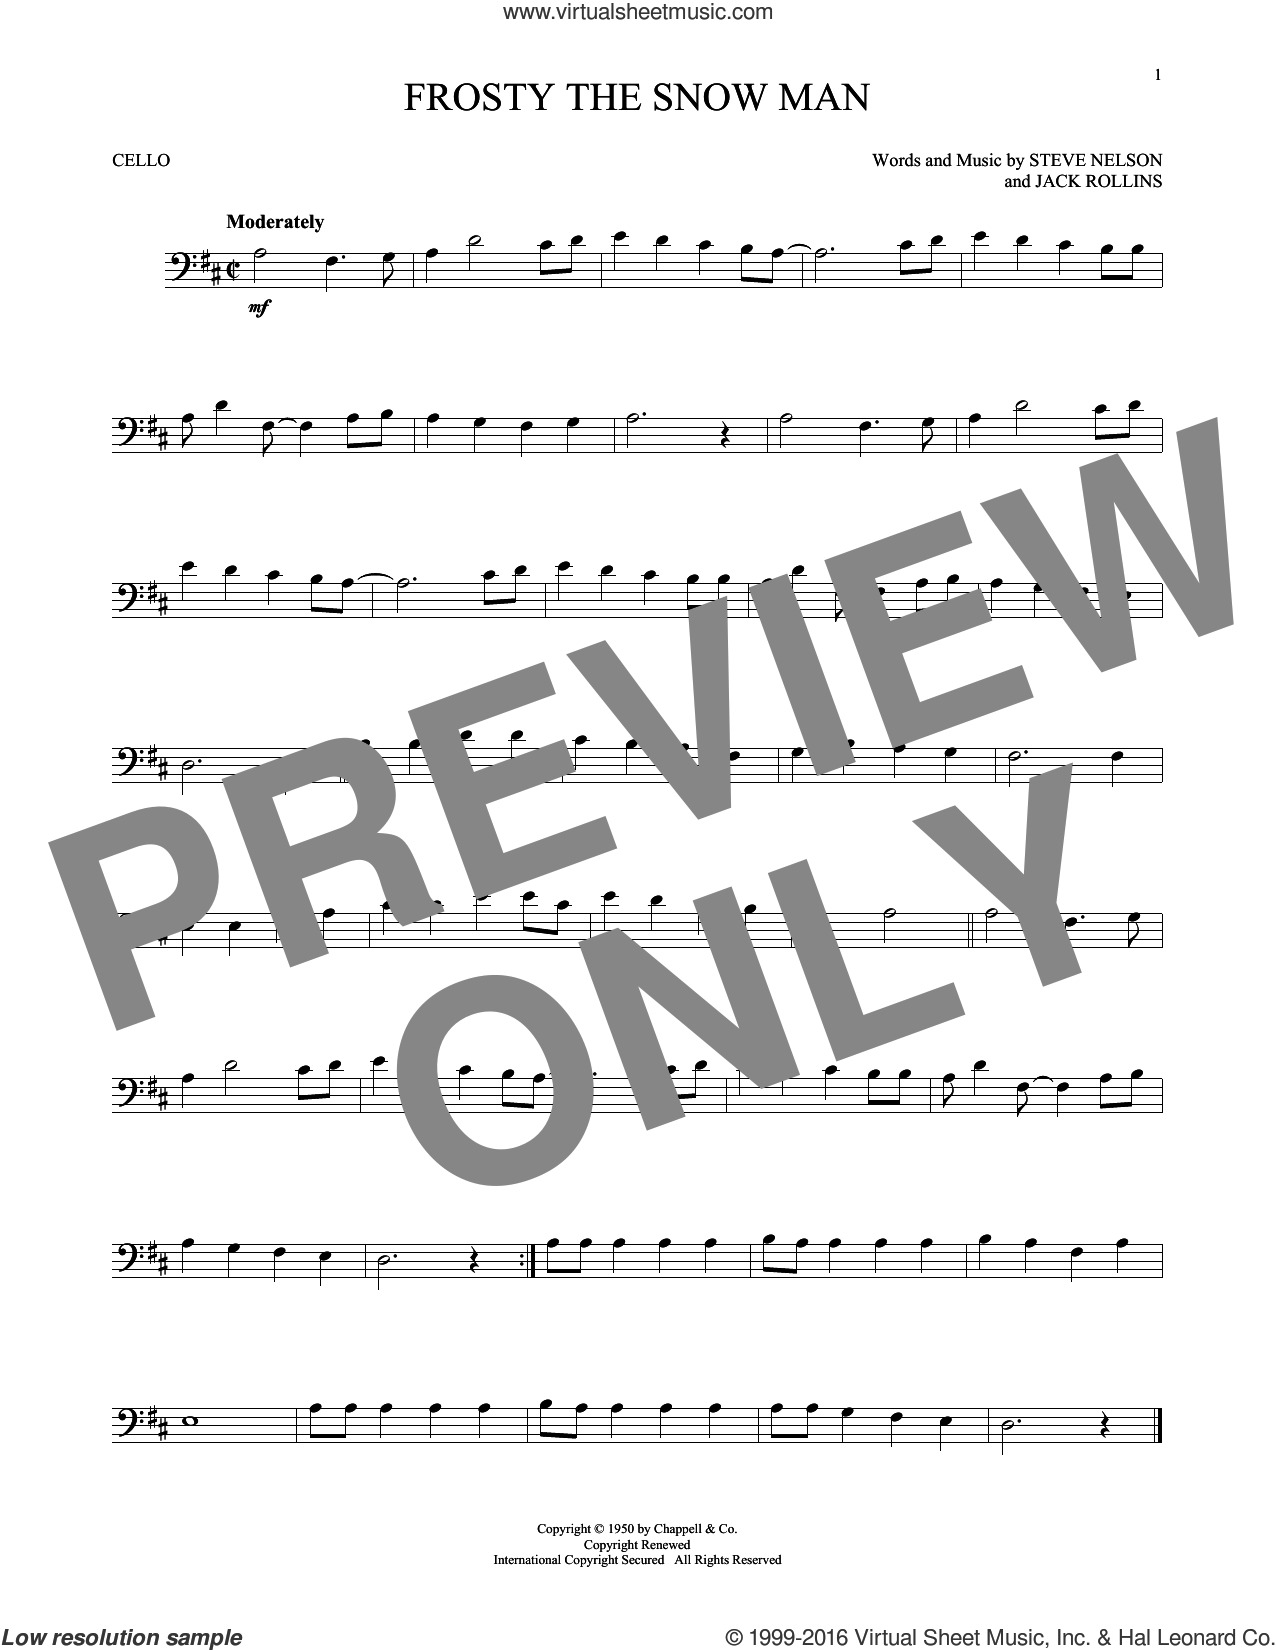 Frosty The Snow Man sheet music for cello solo by Steve Nelson and Jack Rollins. Score Image Preview.